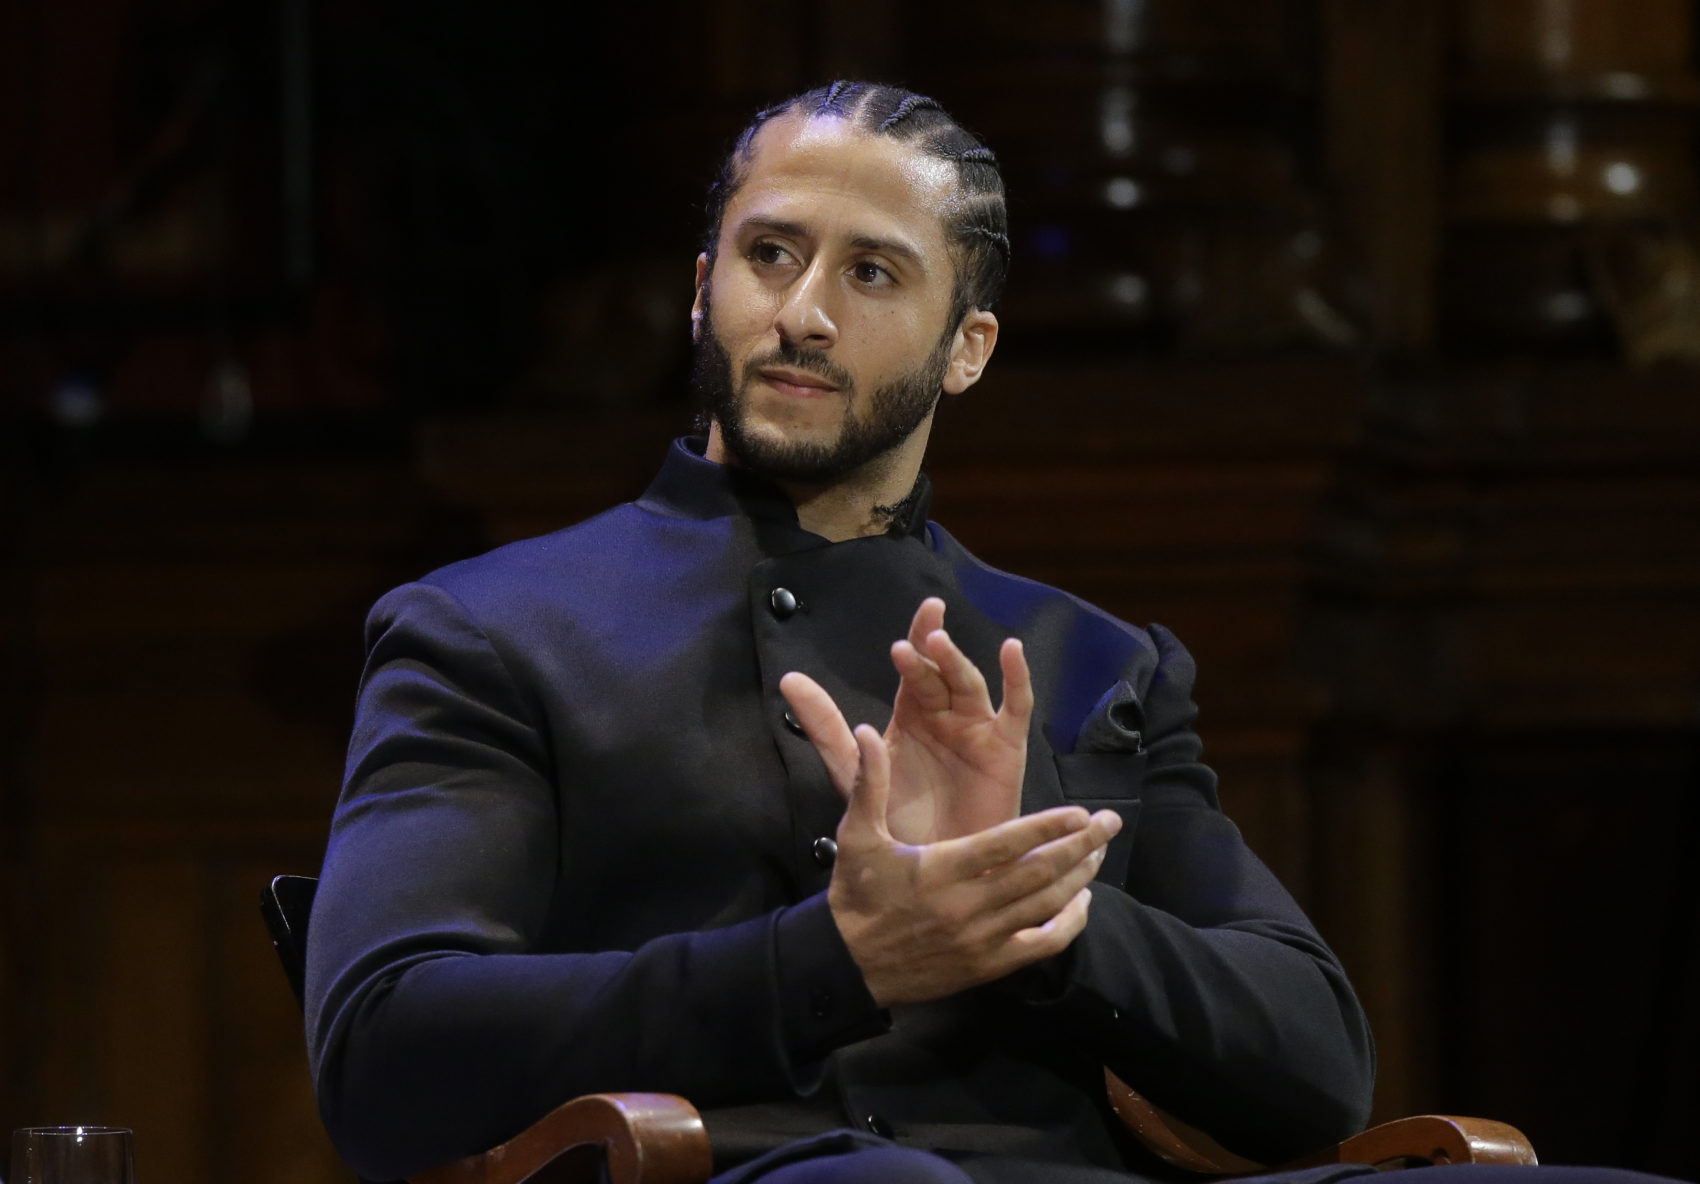 Kaepernick, Chappelle get Harvard black culture award